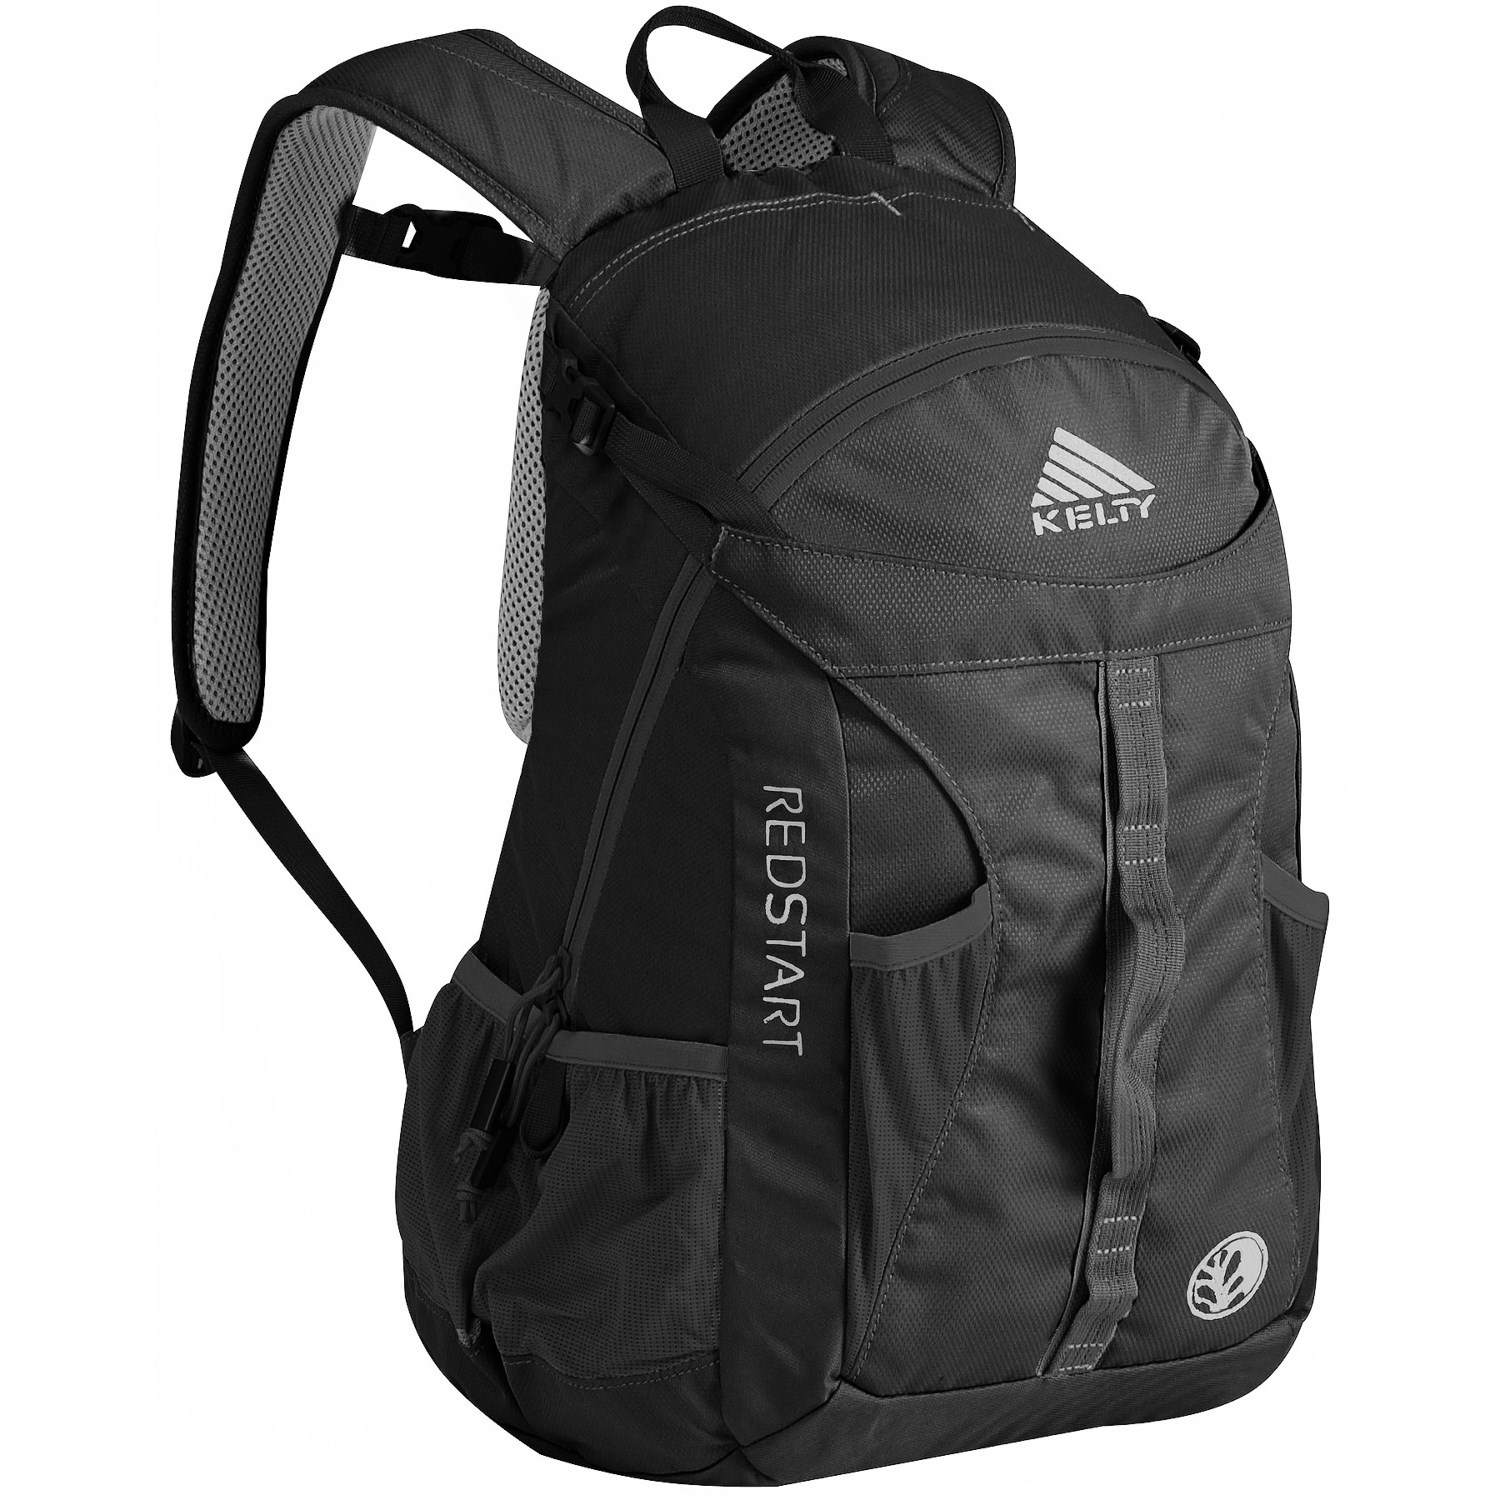 Kelty Hydration Pack Reviews Kelty Arrowhead